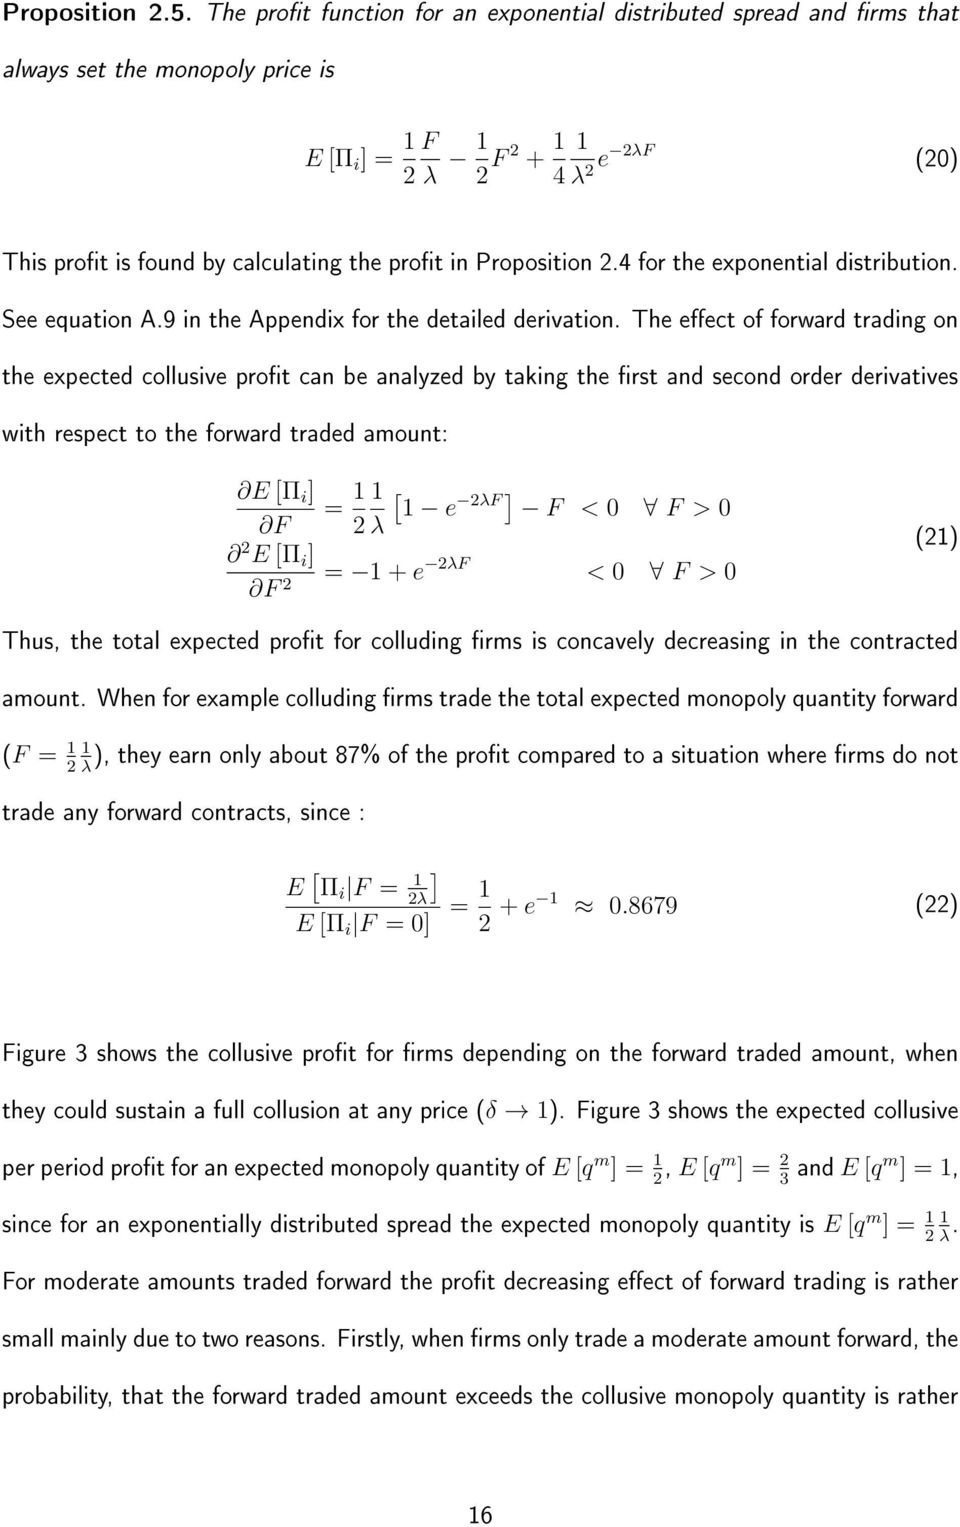 4 for the exponential distribution. See equation A.9 in the Appendix for the detailed derivation.